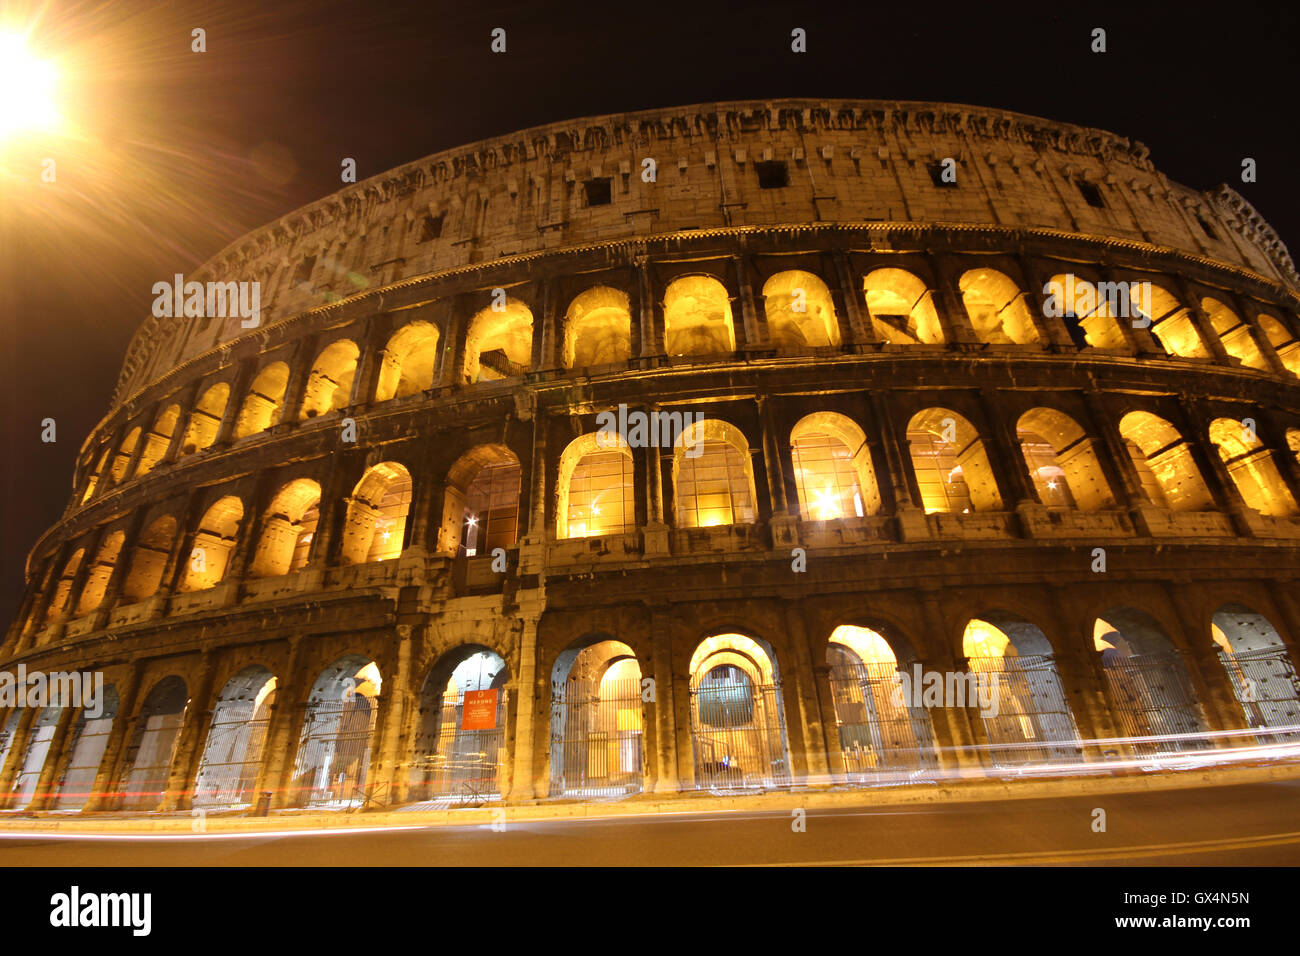 a stunning night shot of the Colosseum, Rome, Italy, il Colosseo, Roma - Stock Image